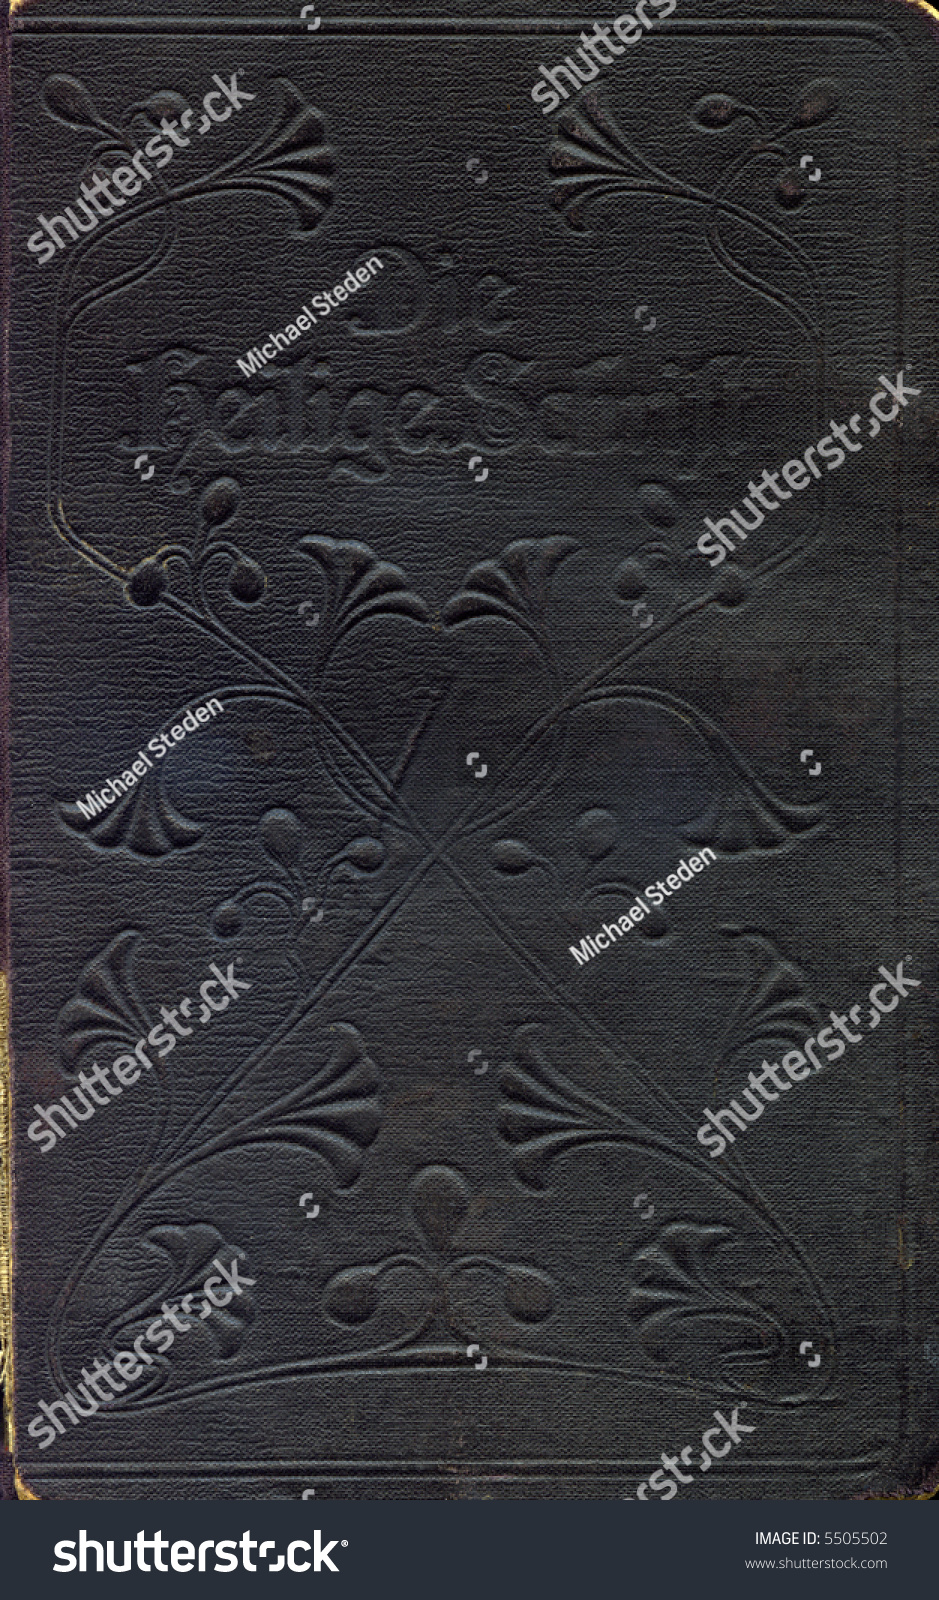 Vintage Leather Look Jeremiah Verse Bible Book Cover Large: Ancient Old Bible Cover Front The Holy Book Stock Photo